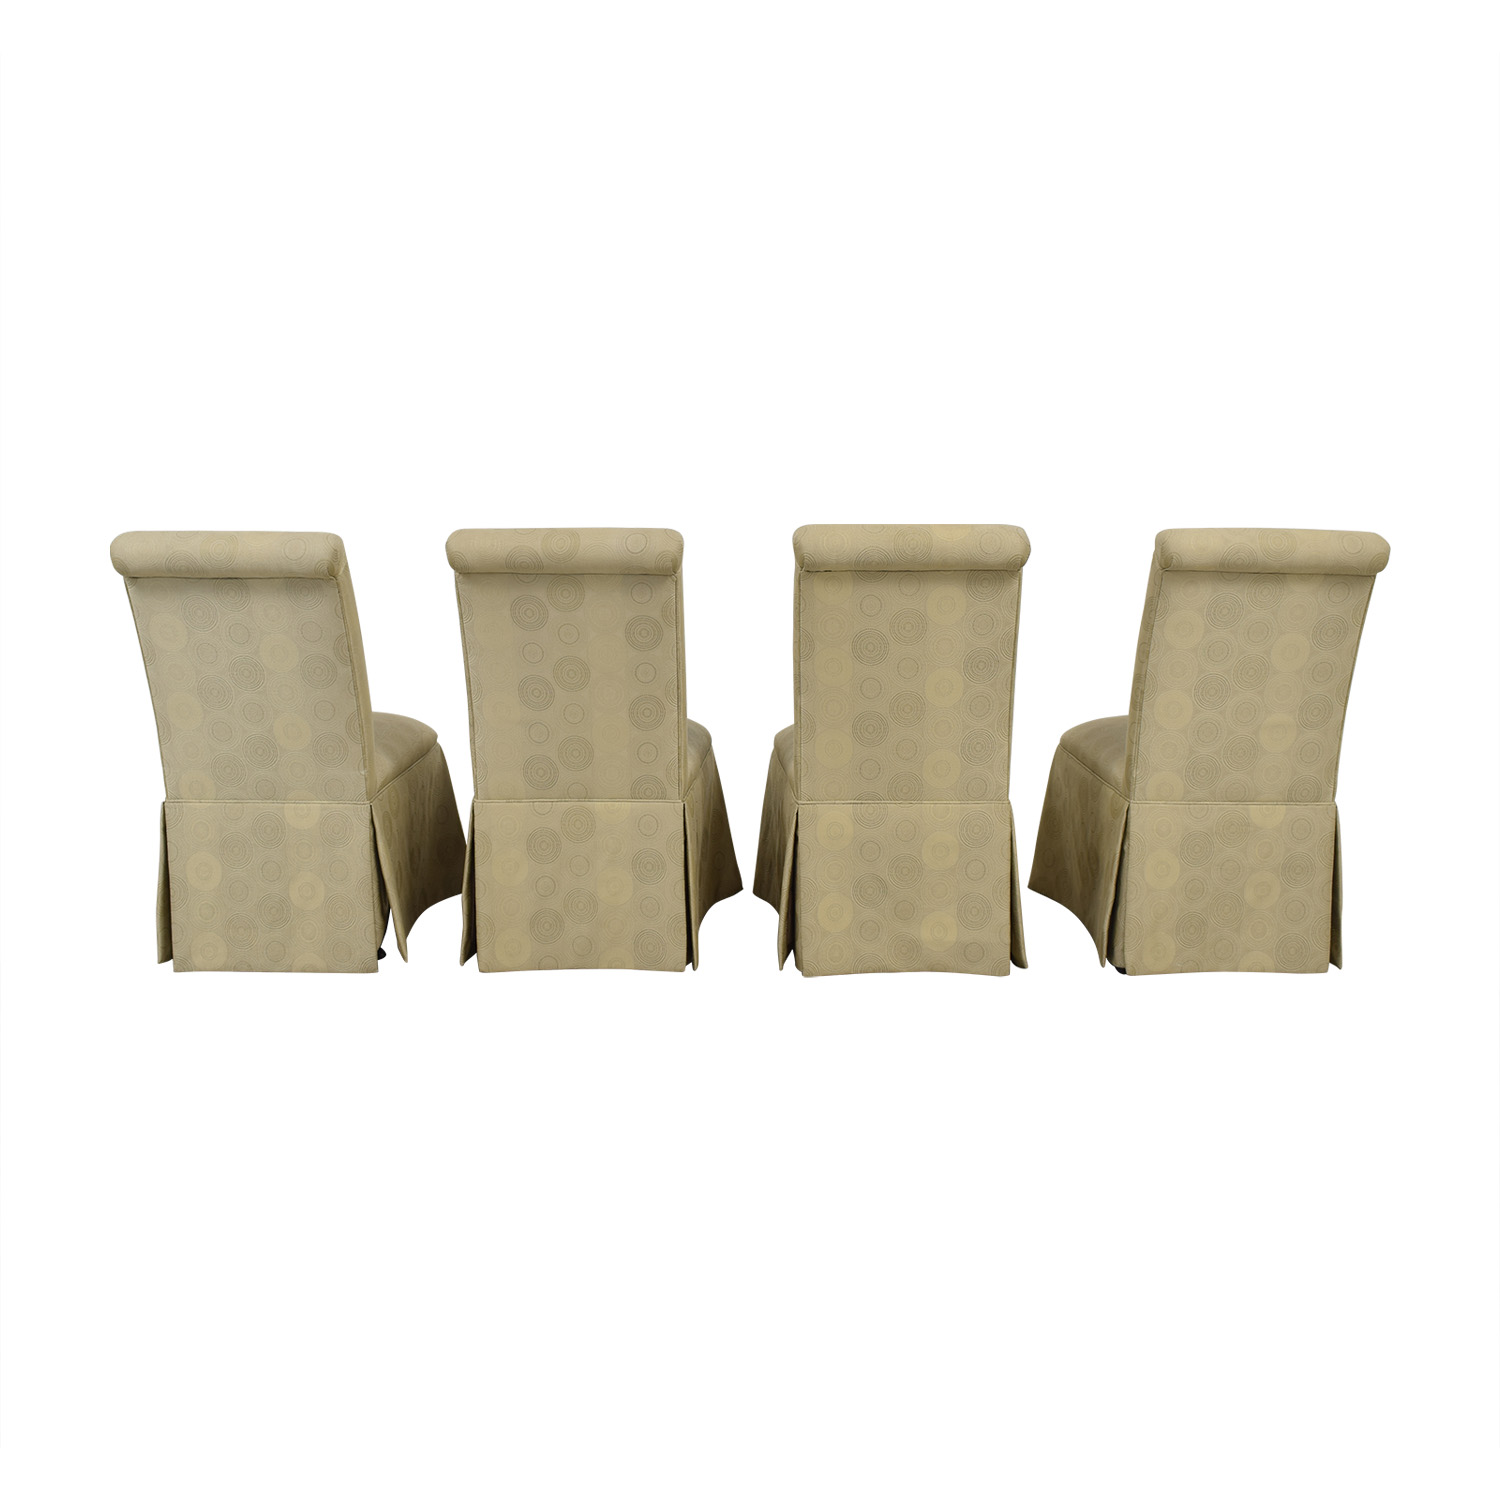 Ethan Allen Ethan Allen Skirted Dining Chairs tan